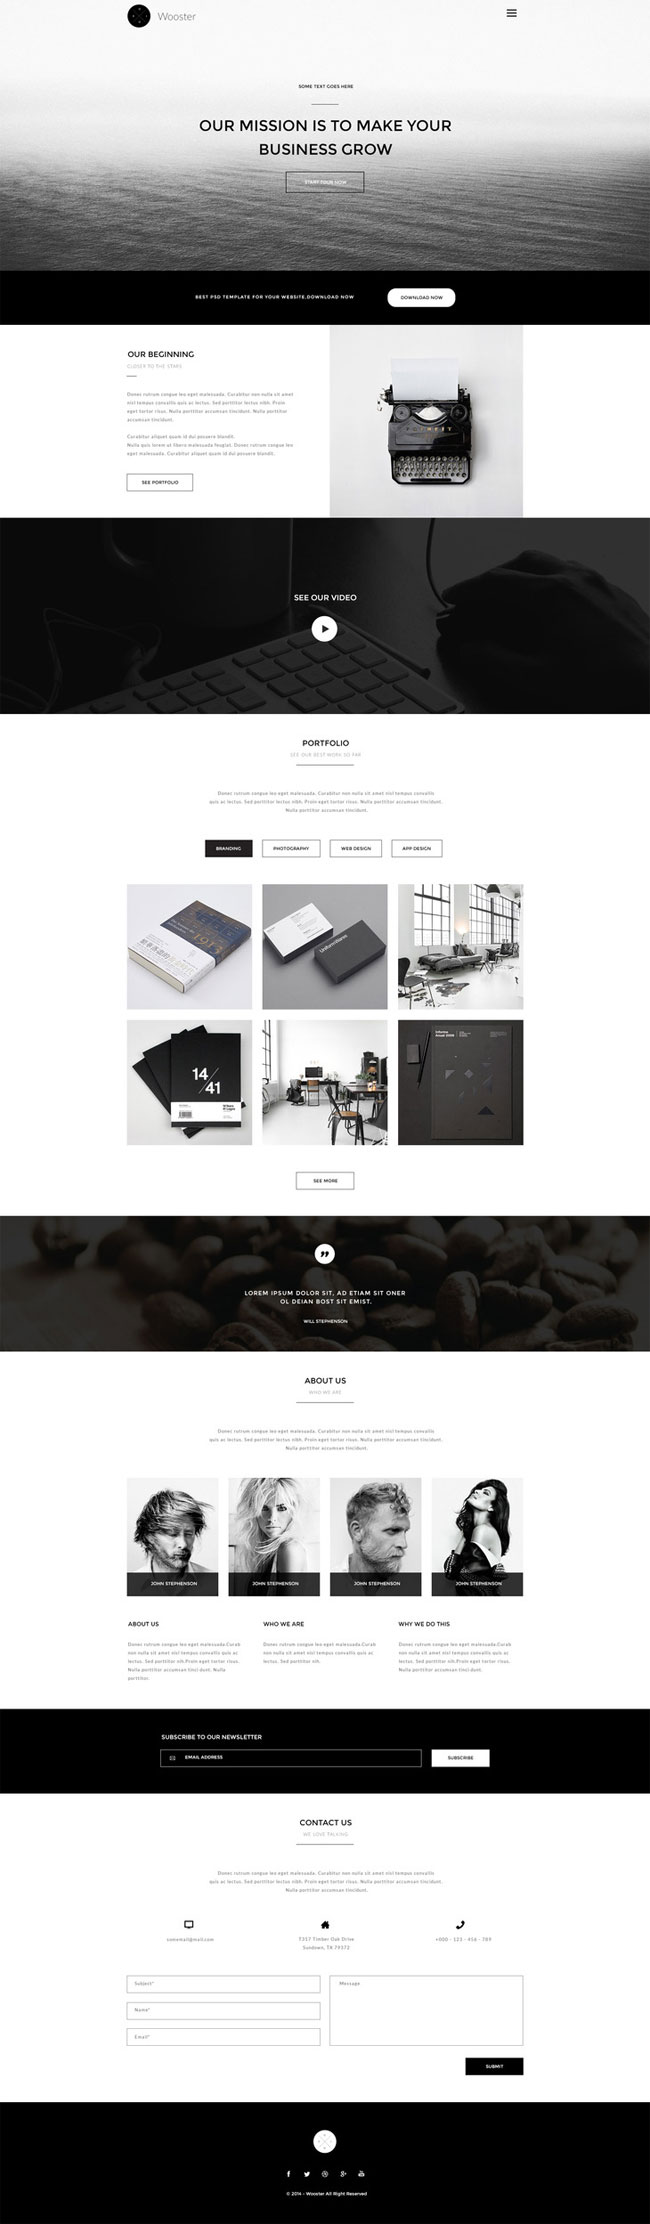 Wooster - Free Vintage One Page PSD Theme